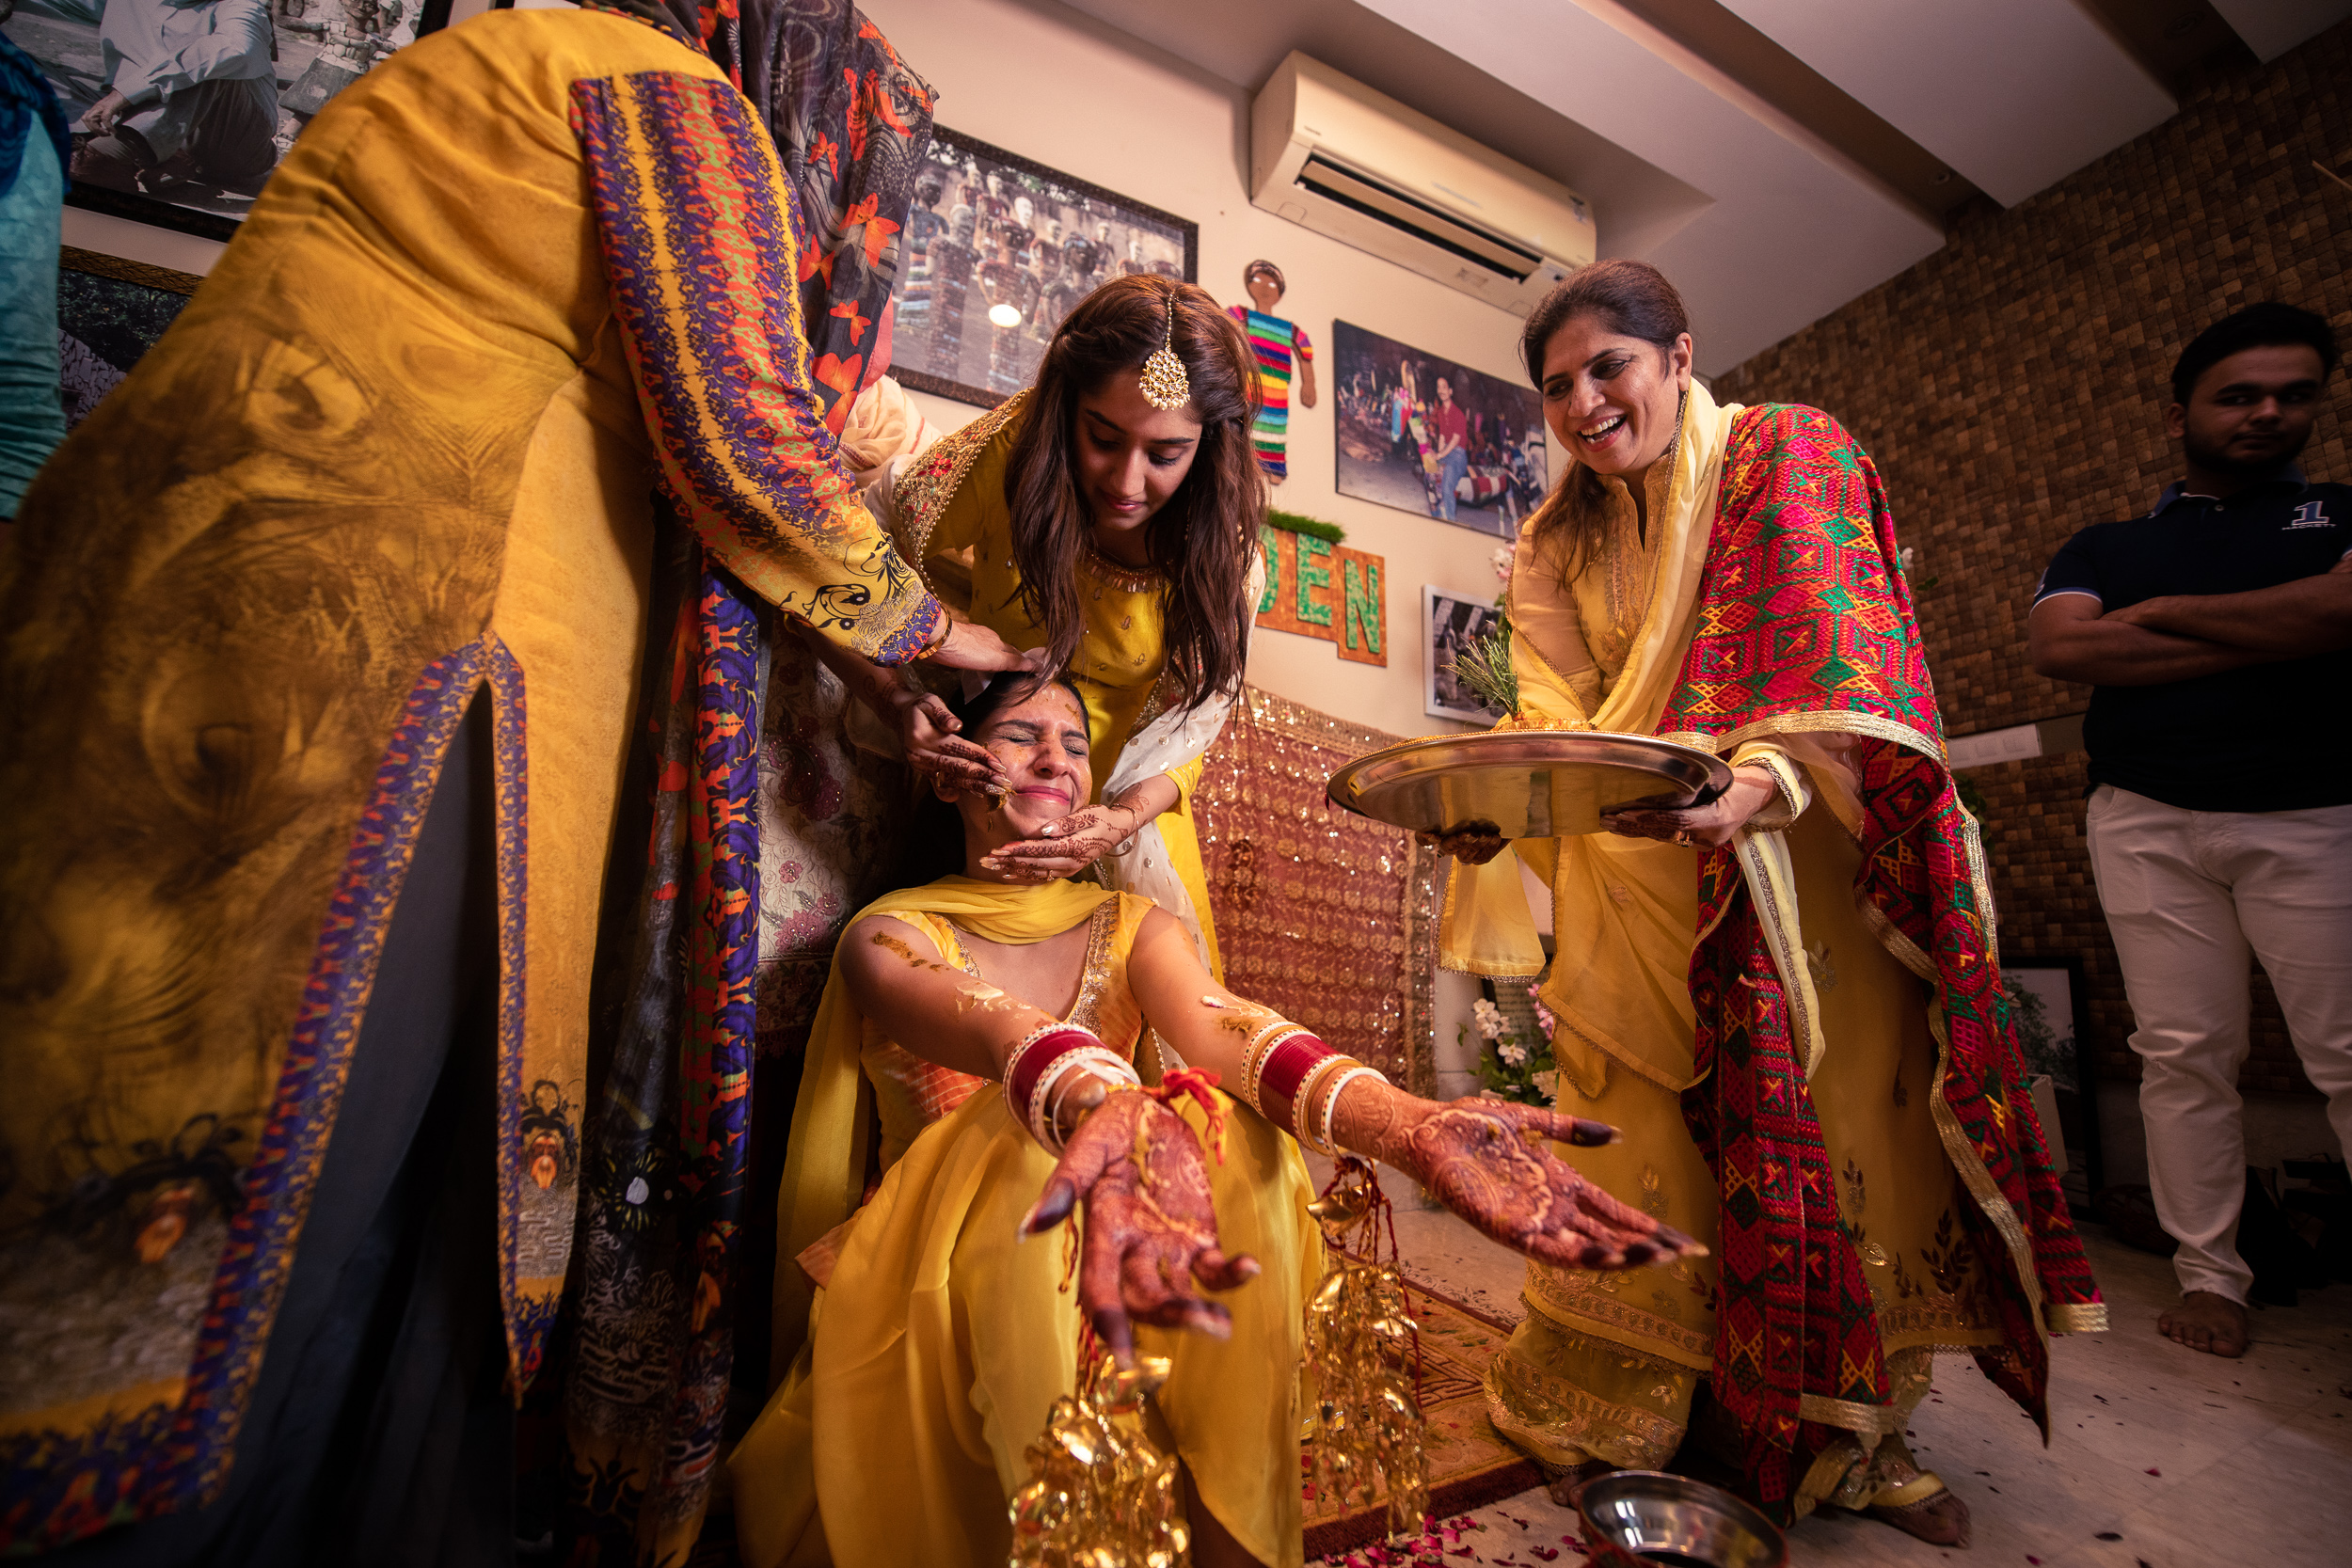 Indian bride haldi ceremony at a Delhi wedding.